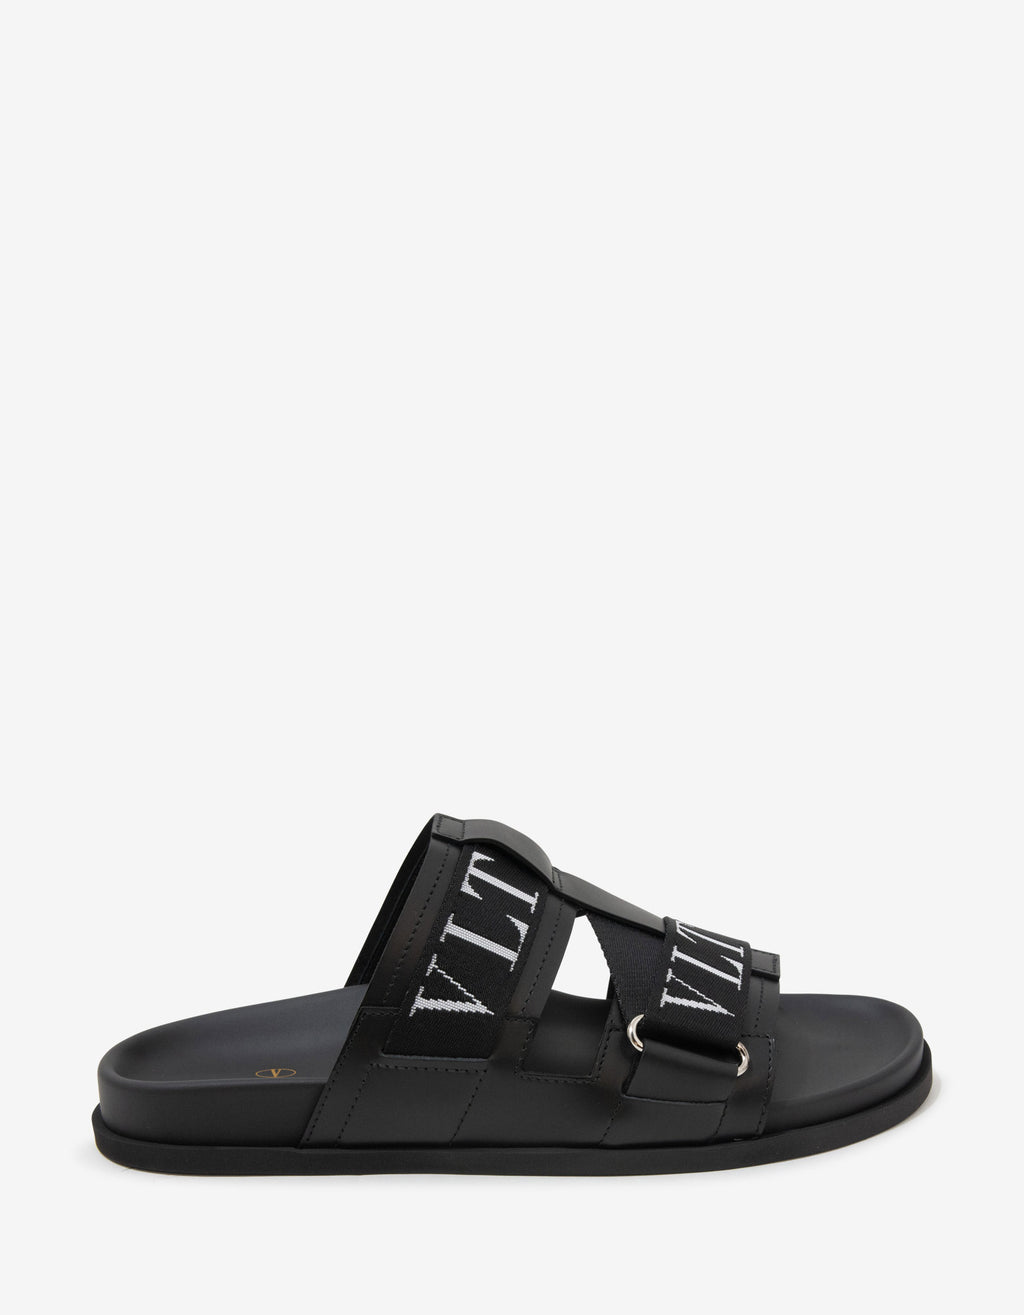 Black Leather VLTN Sandals